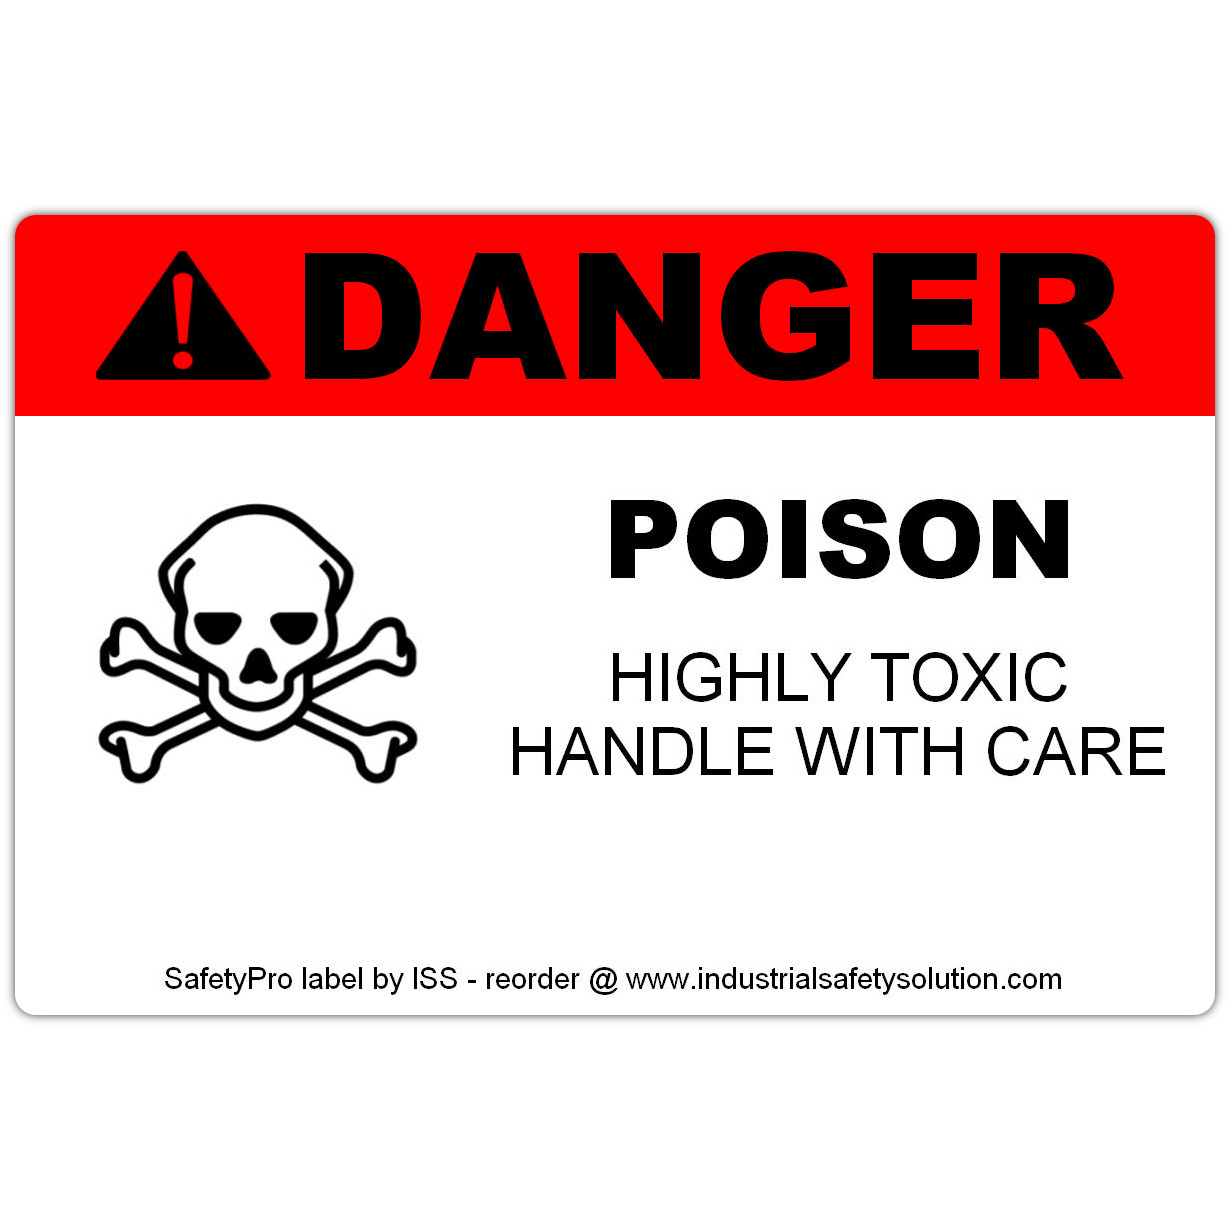 4in x 6in DANGER Poison Safety Label